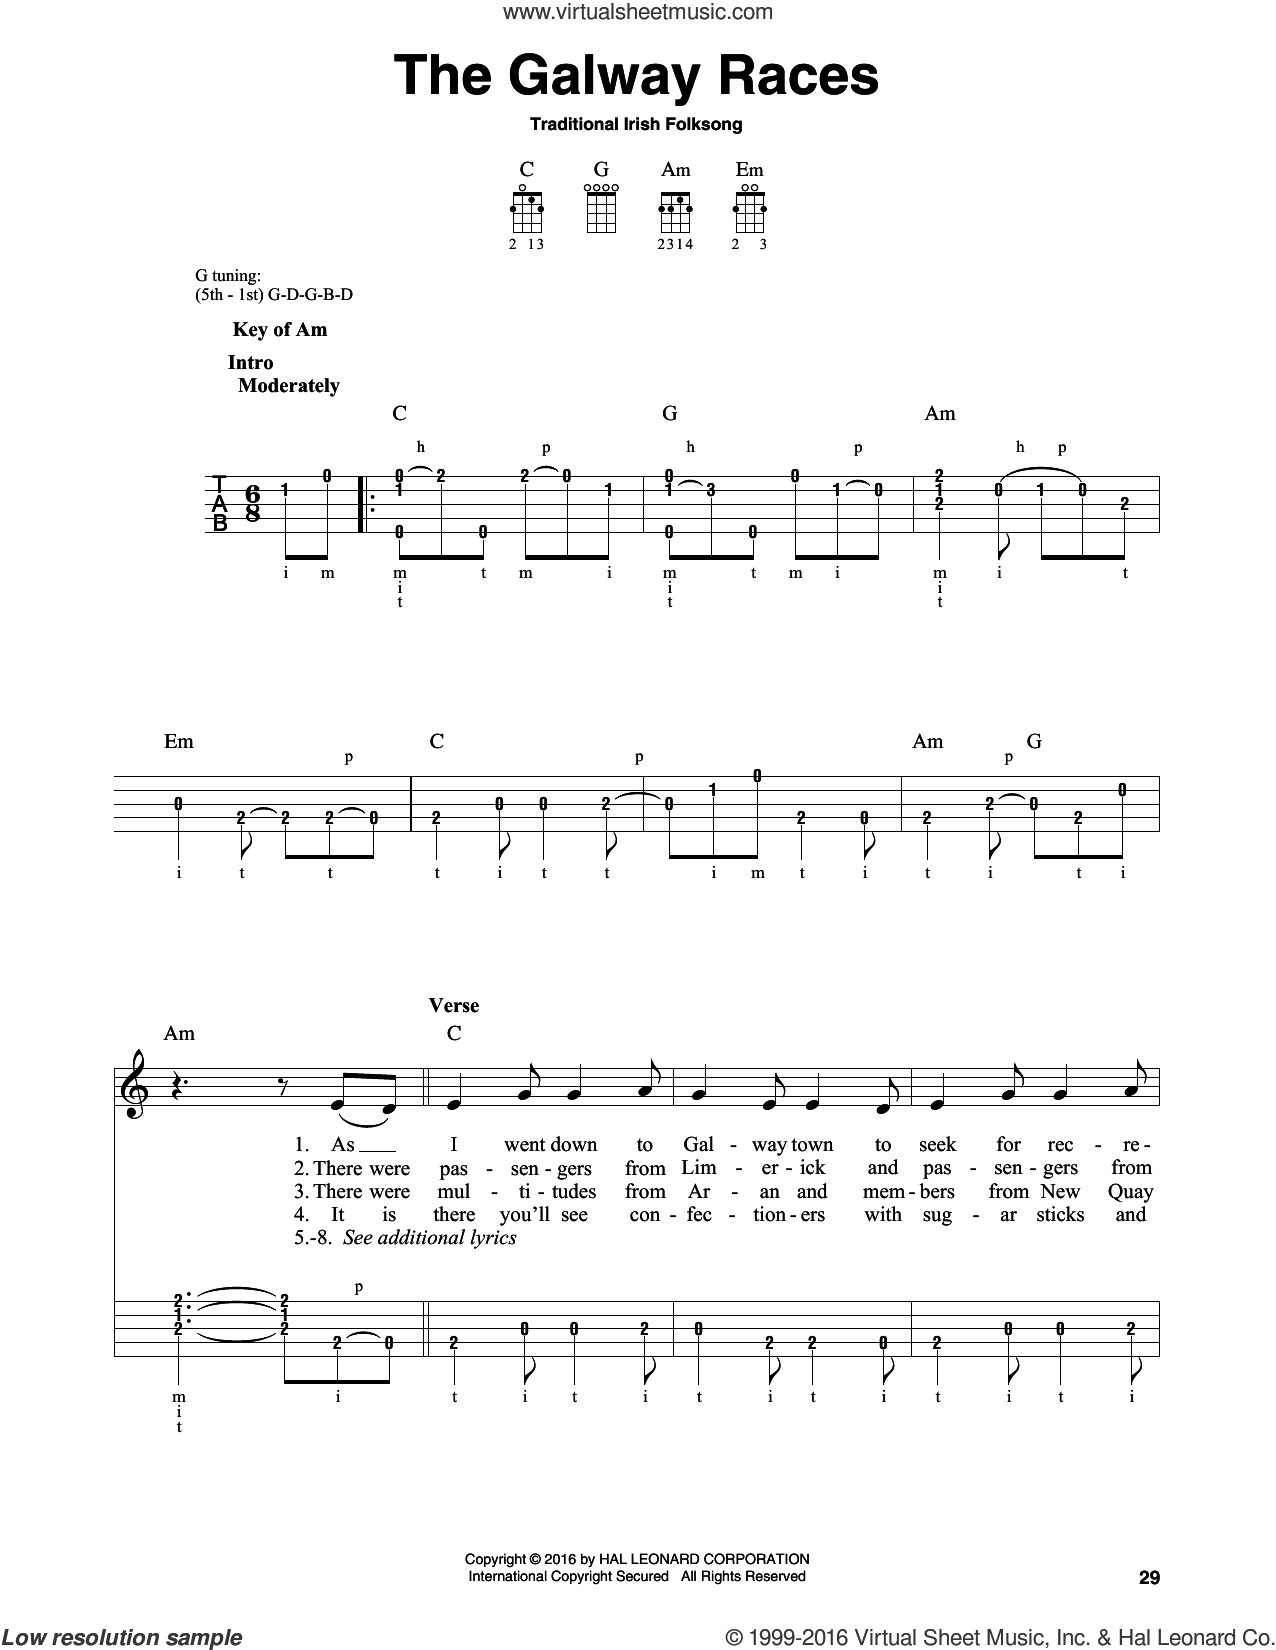 The Galway Races sheet music for banjo solo, intermediate skill level